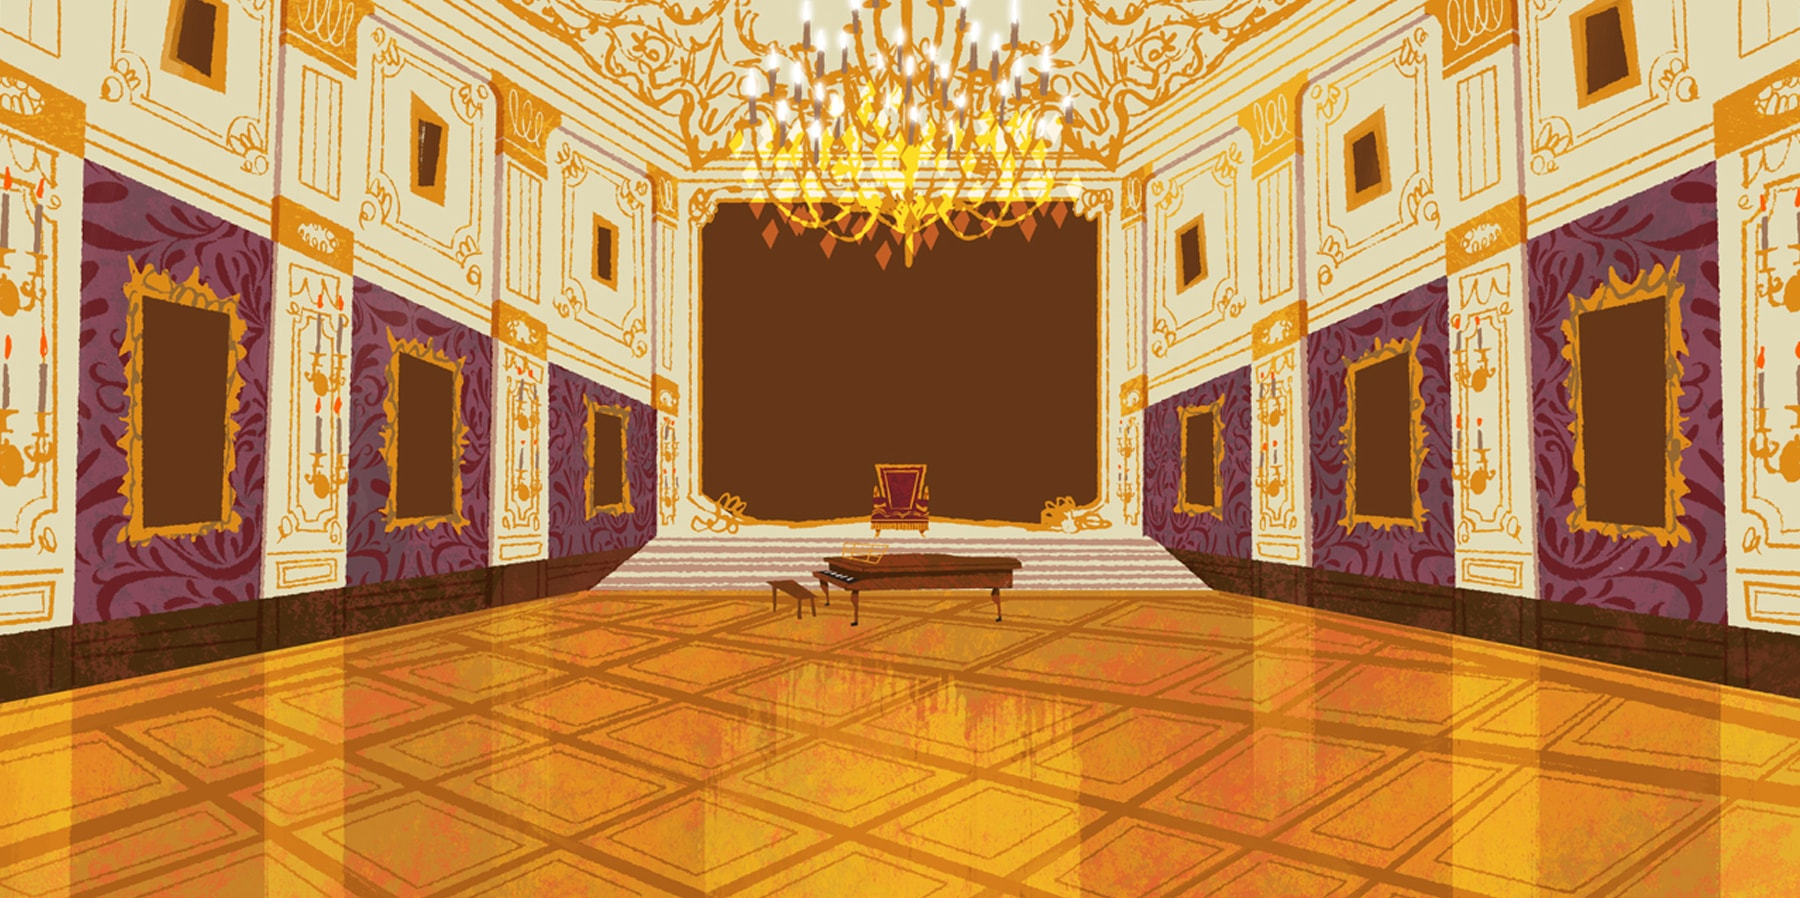 Chris Turnham's illustration of a grand concert hall, featuring polished floors, a grand piano and a large chandelier